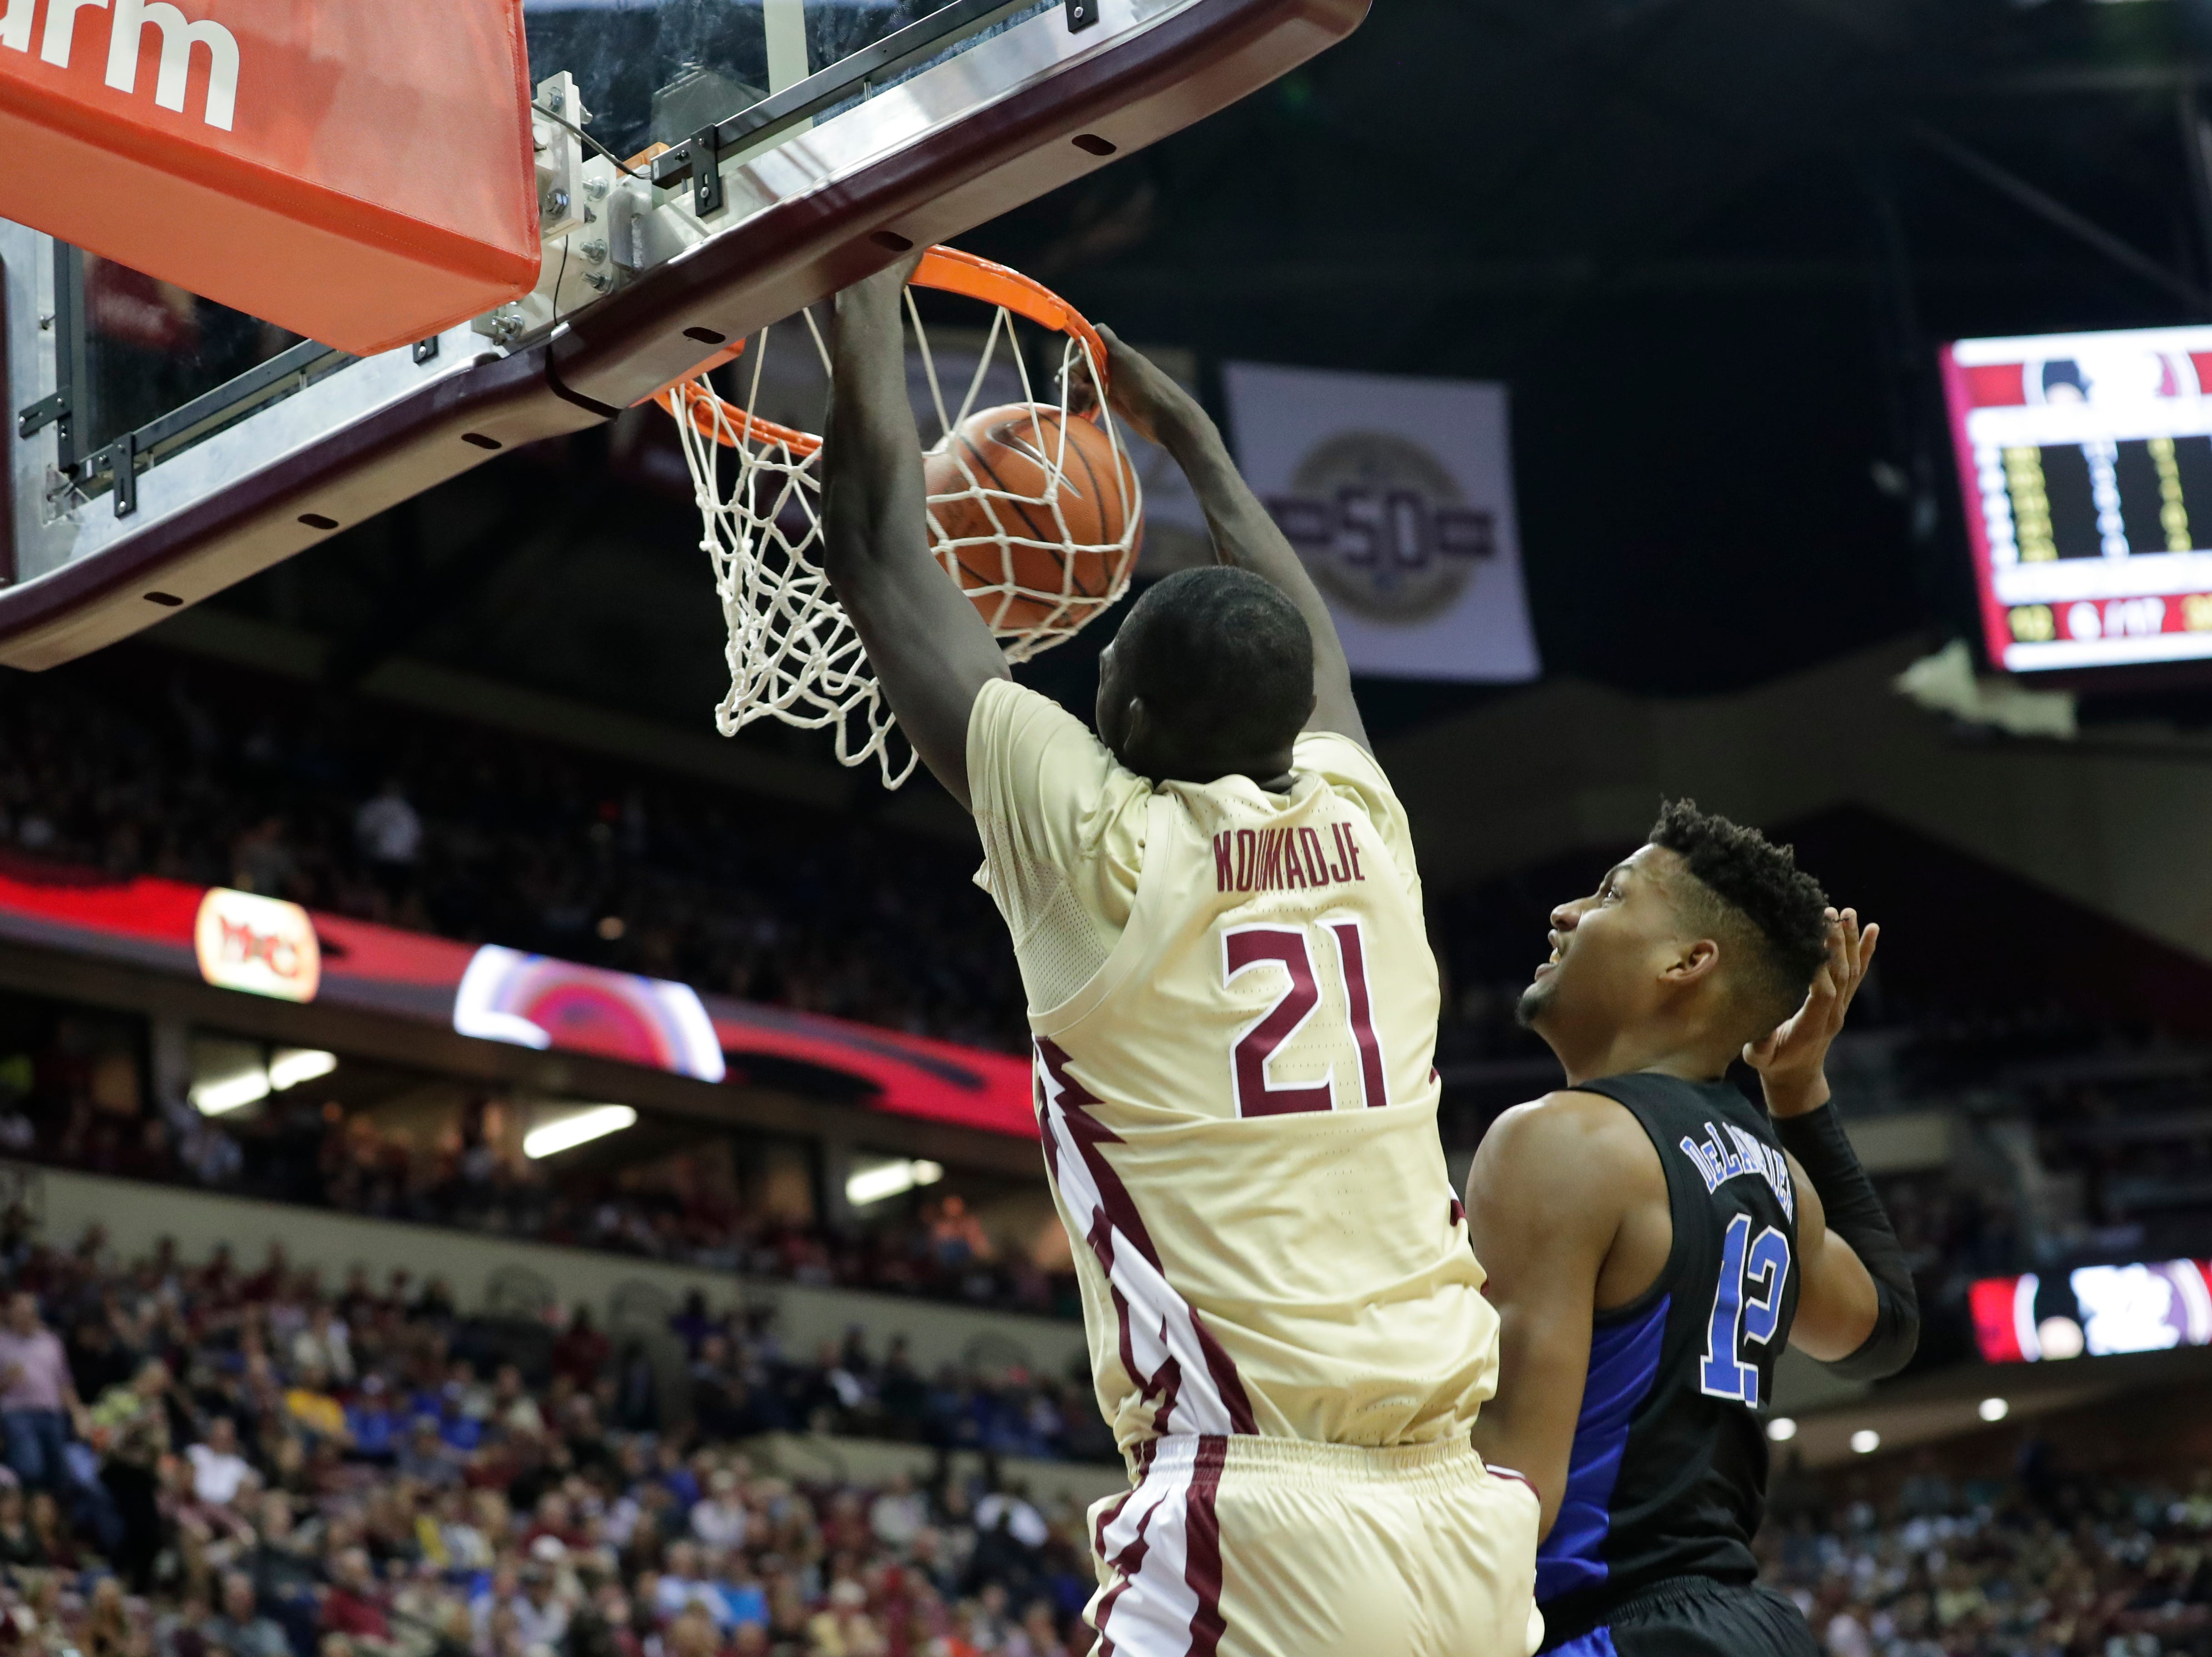 Florida State Seminoles center Christ Koumadje (21) gets to the hoop before Duke Blue Devils forward Javin DeLaurier (12) can stop him. Ranked 13 in the ACC, the Florida State Seminoles host the number 1 team, the Duke Blue Devils, at the Tucker Civic Center, Saturday, Jan. 12, 2019.